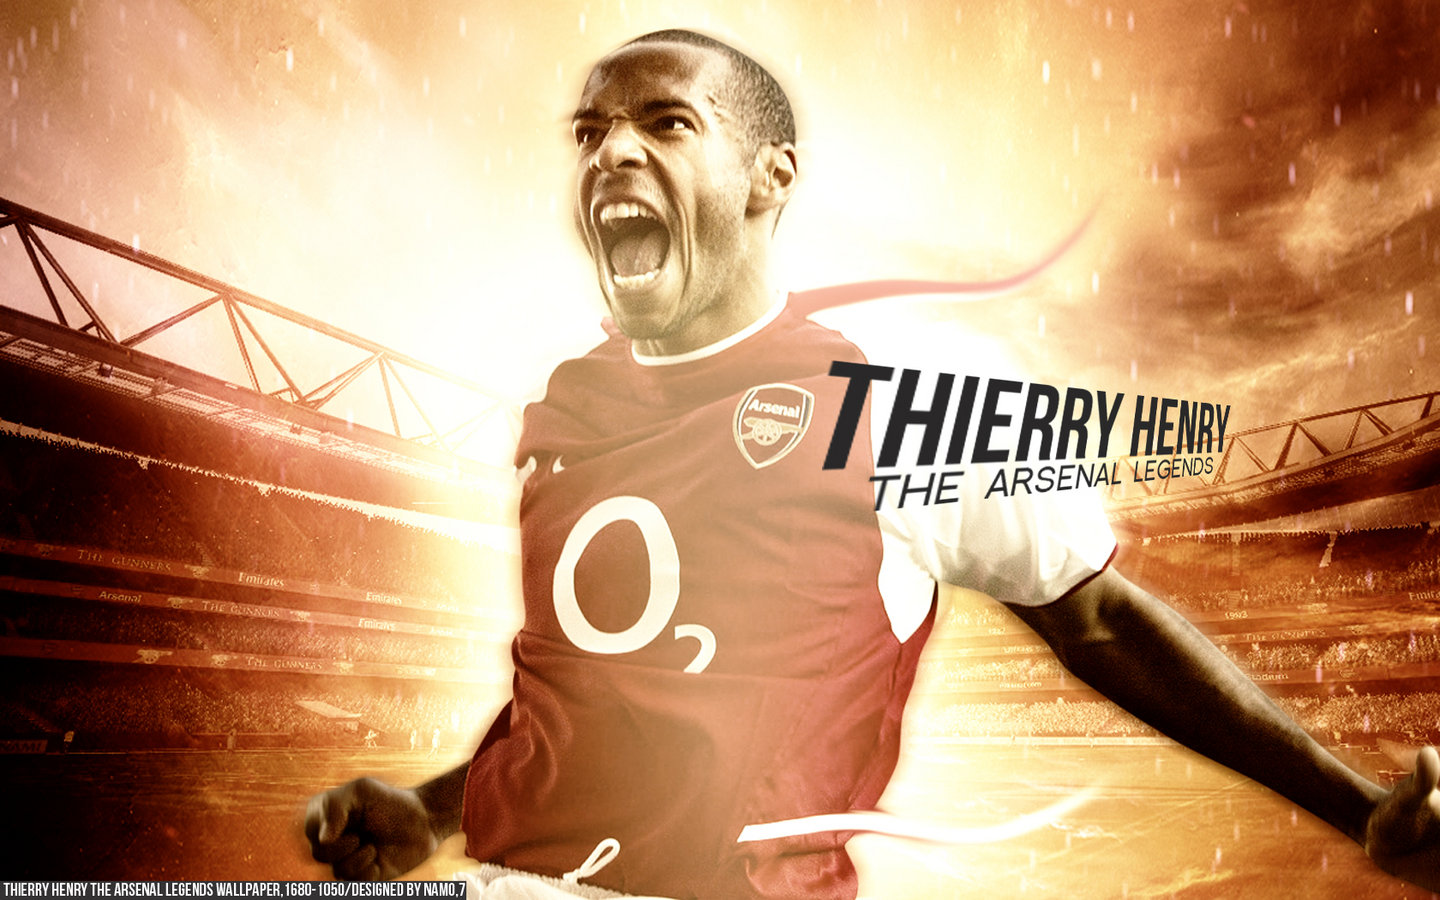 Thierry henry arsenal legend